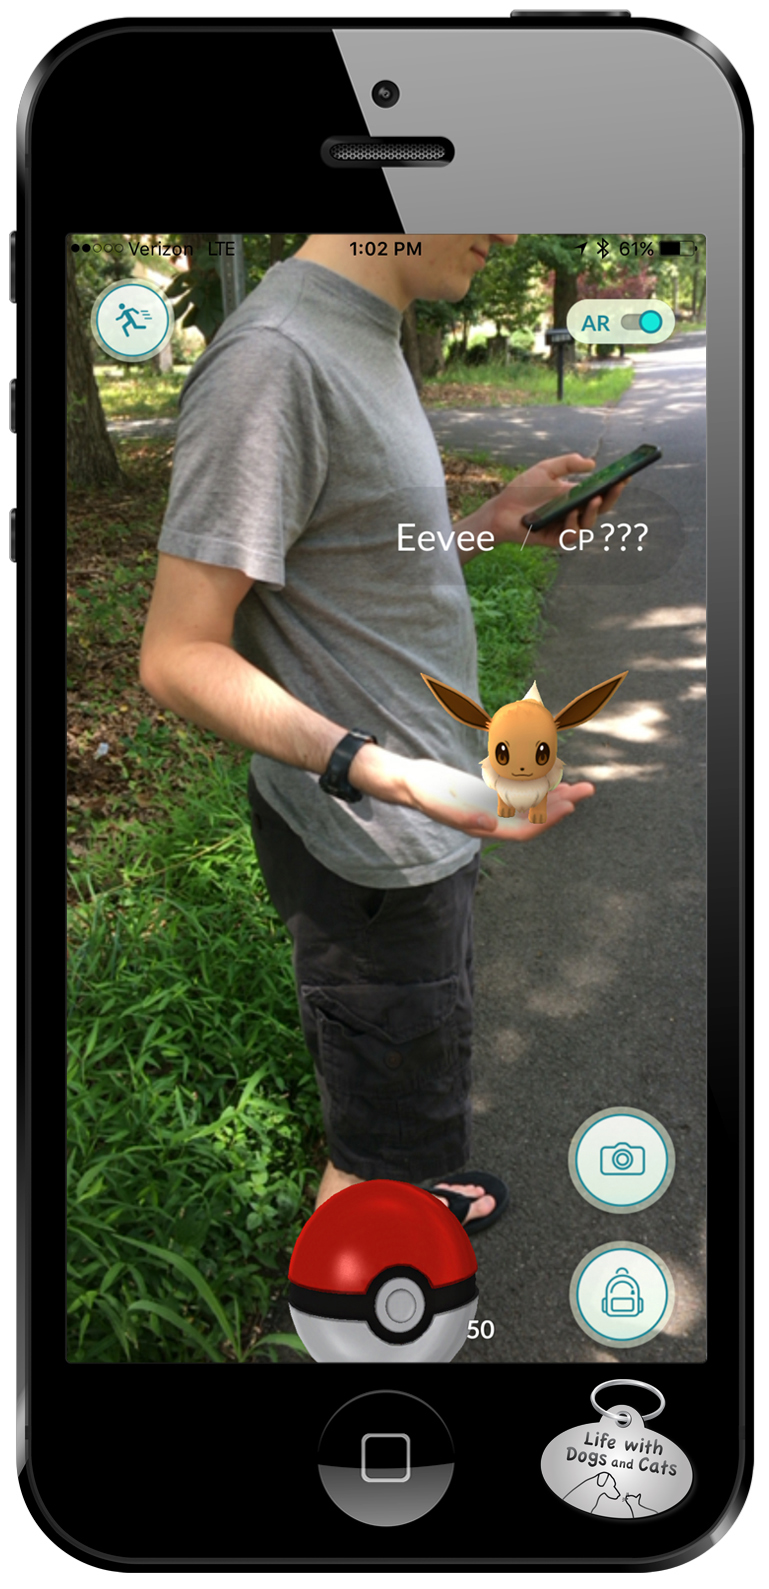 Playing Pokemon Go, I found a fox-like Eevee in our neighborhood. It hopped up in Aaron's hand and I caught it.